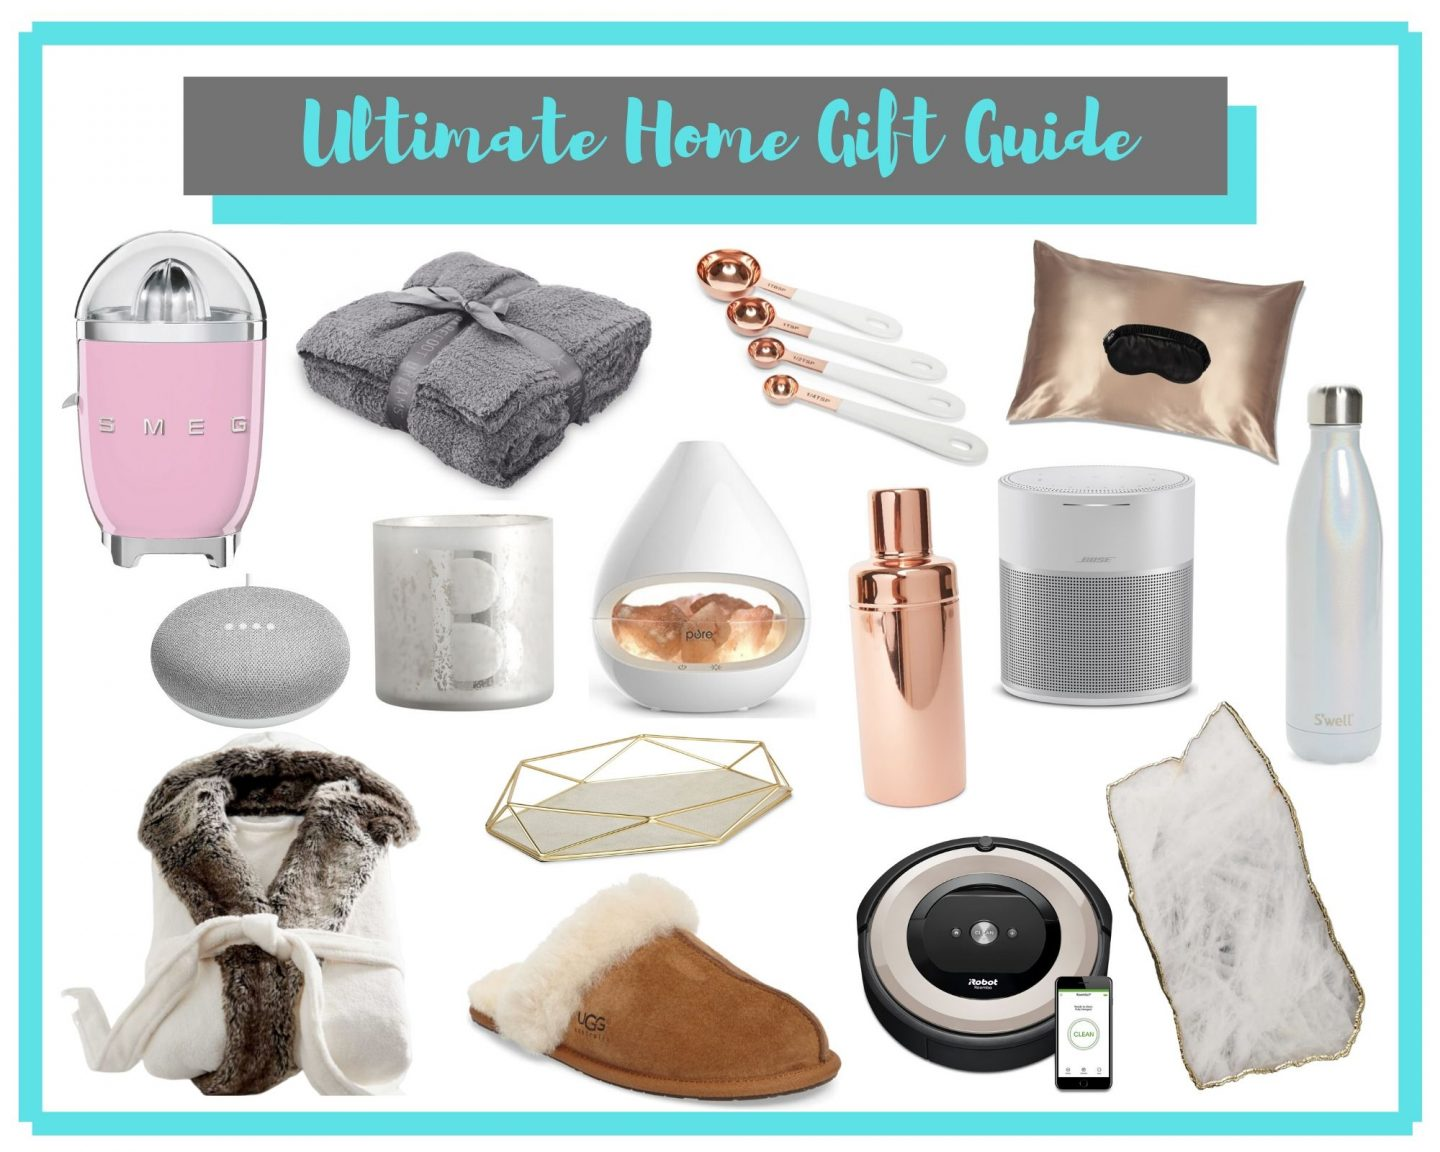 Ultimate Home Gift Guide